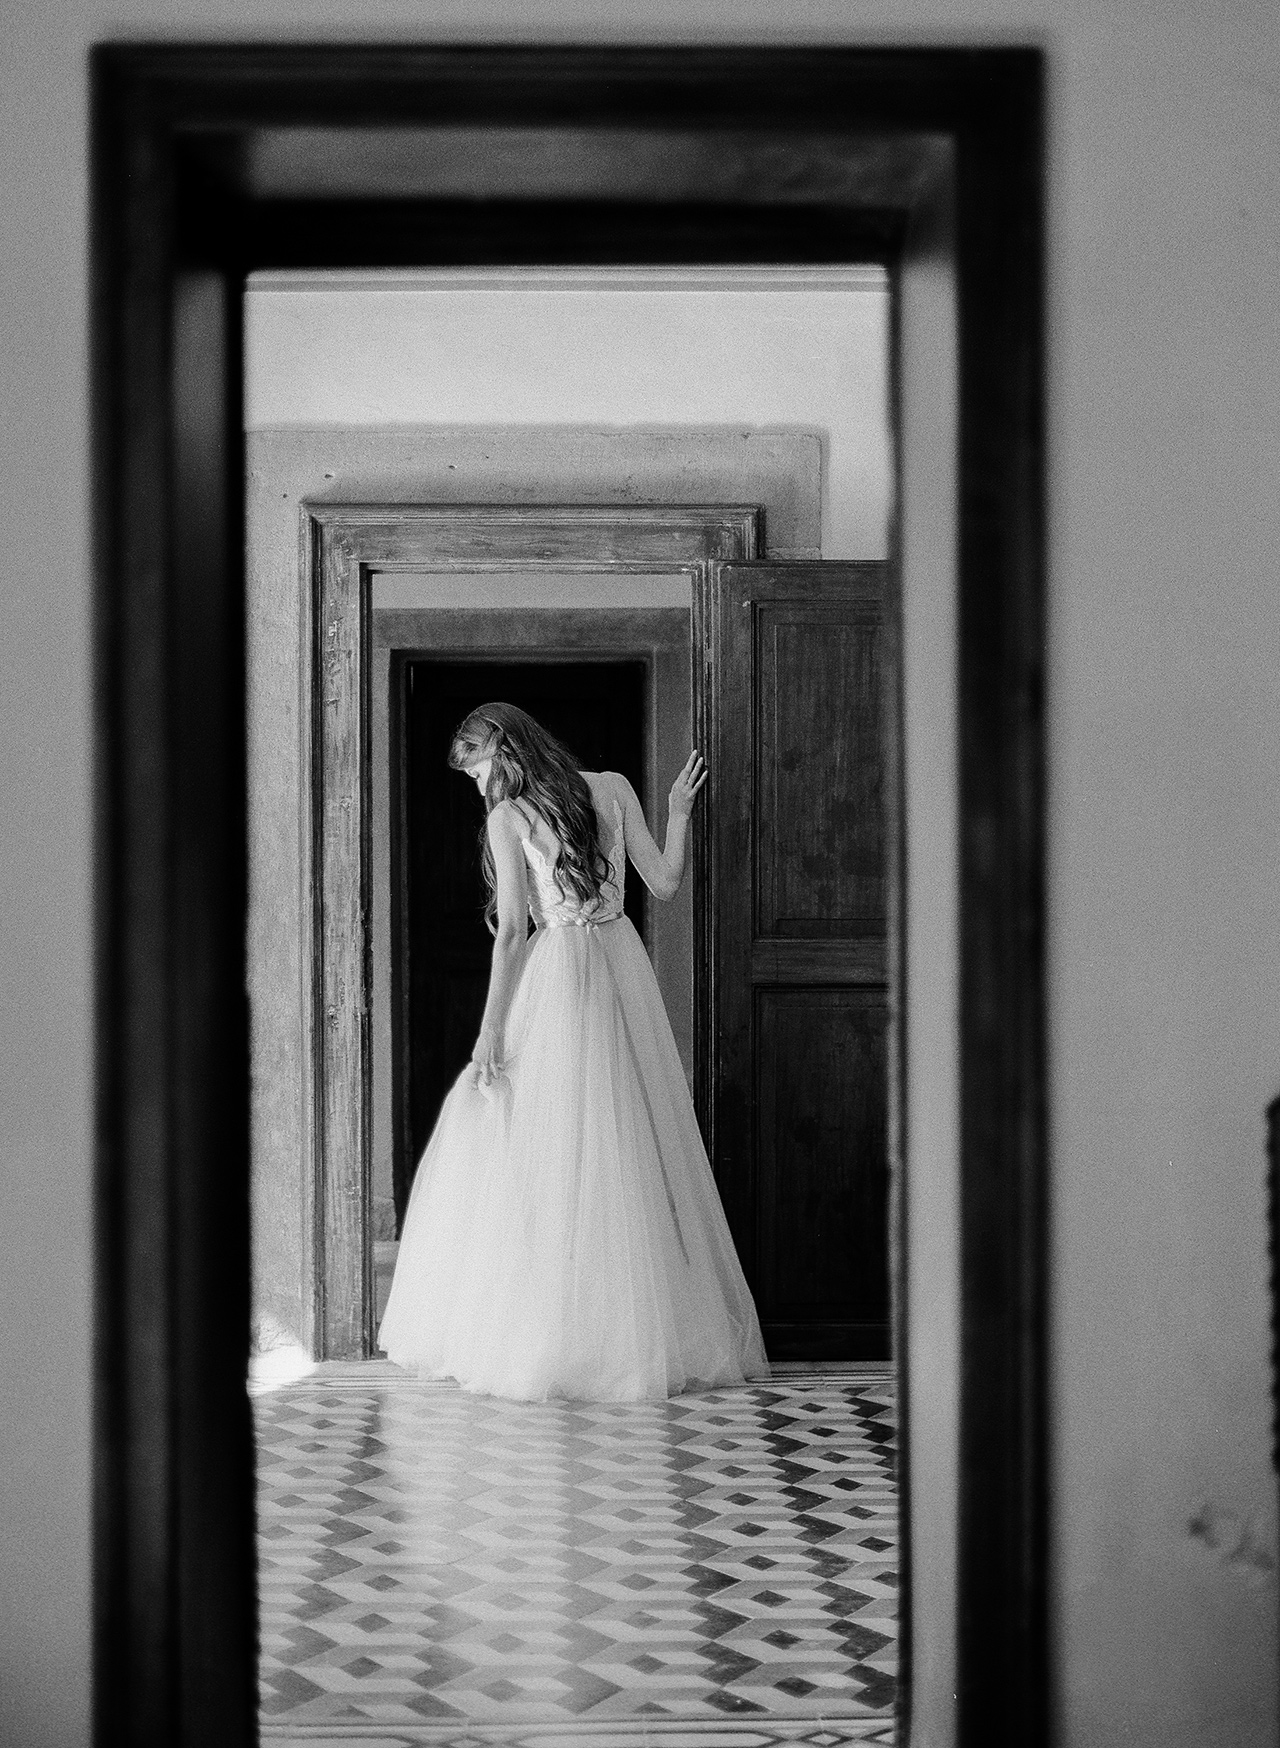 doorway view bride dress and hairstyle